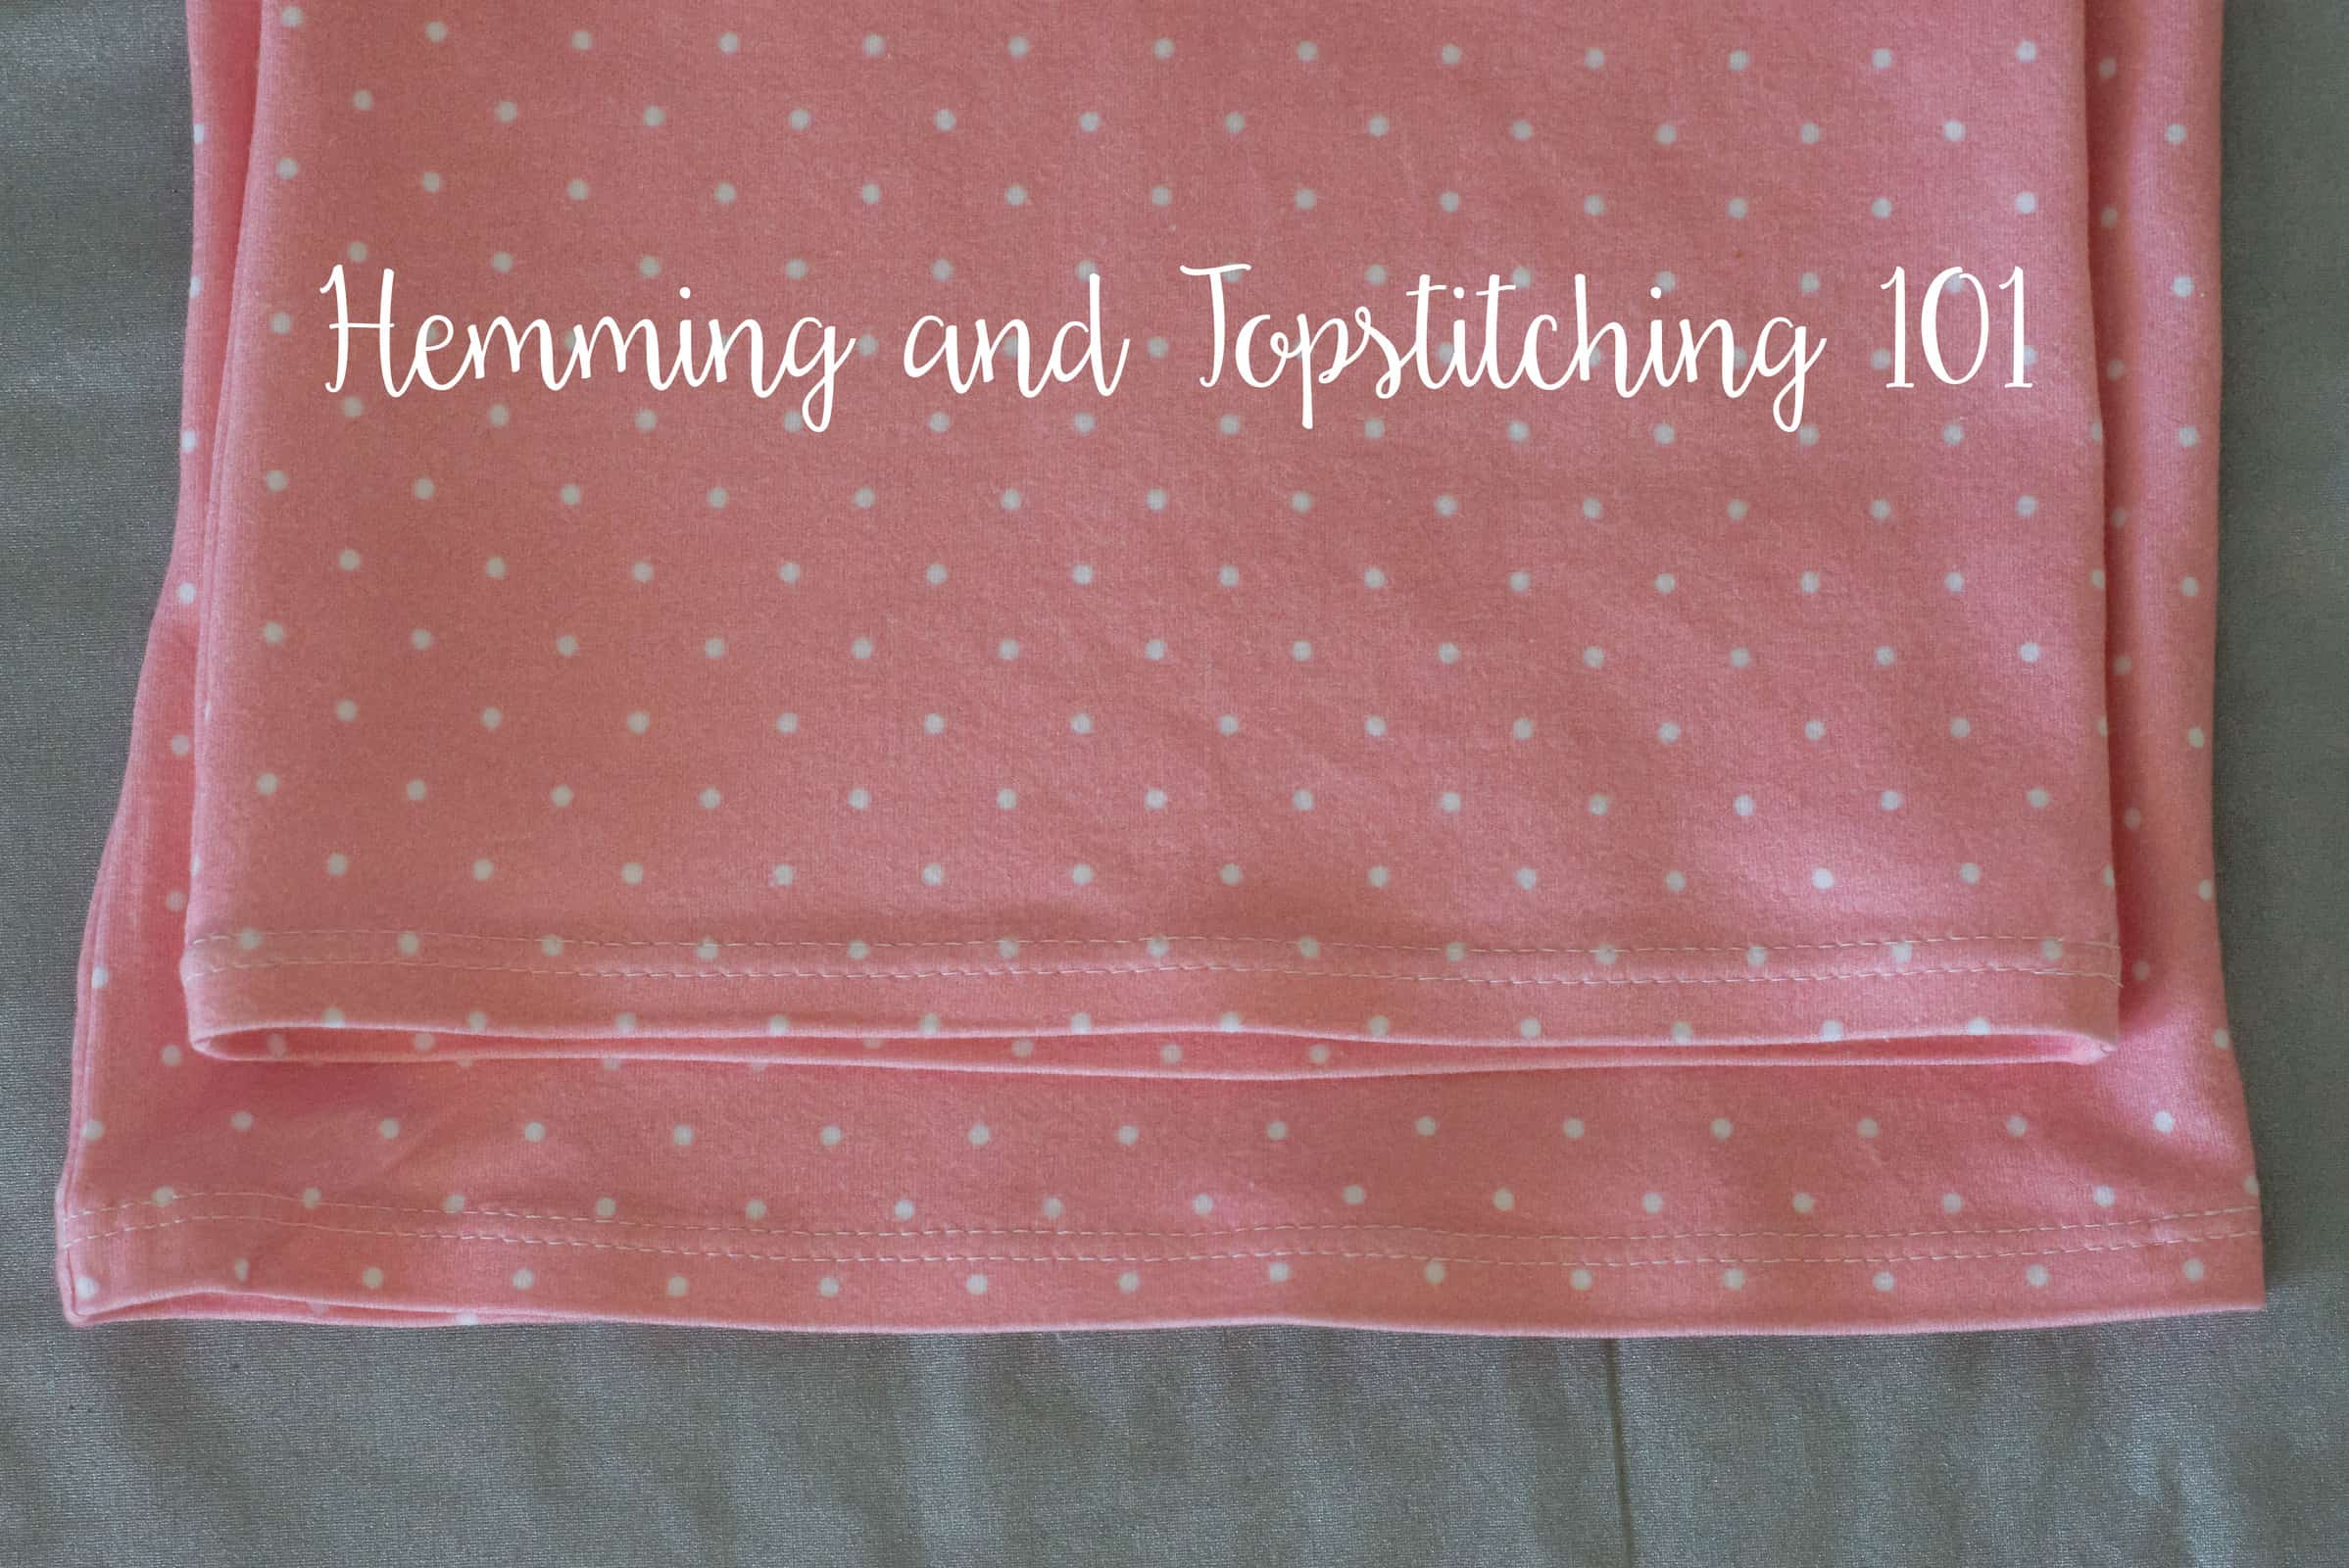 Hemming and Topstitching 101